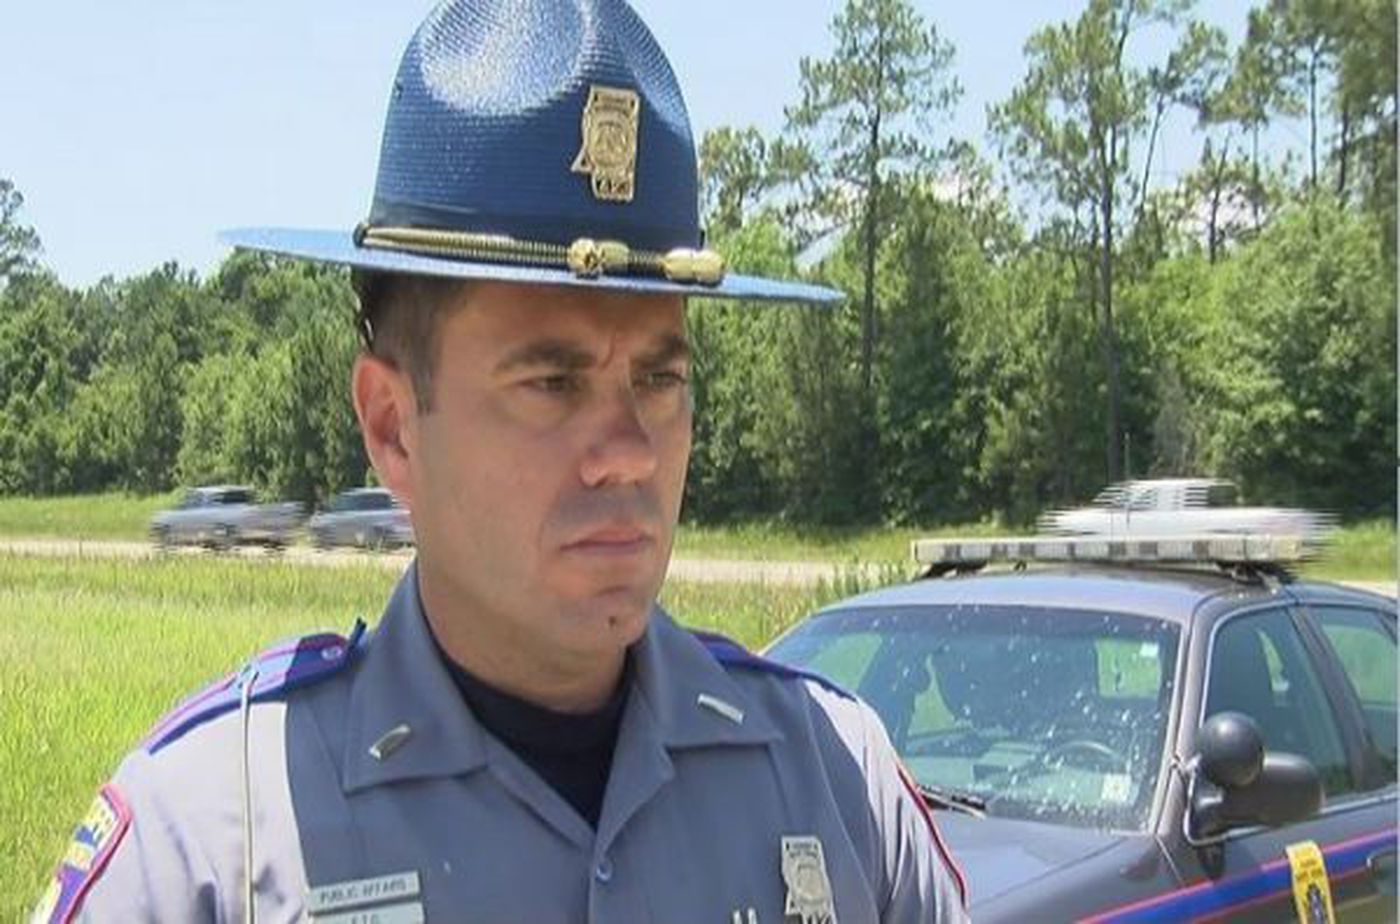 MS Troopers will be out in full force for Memorial Day weekend